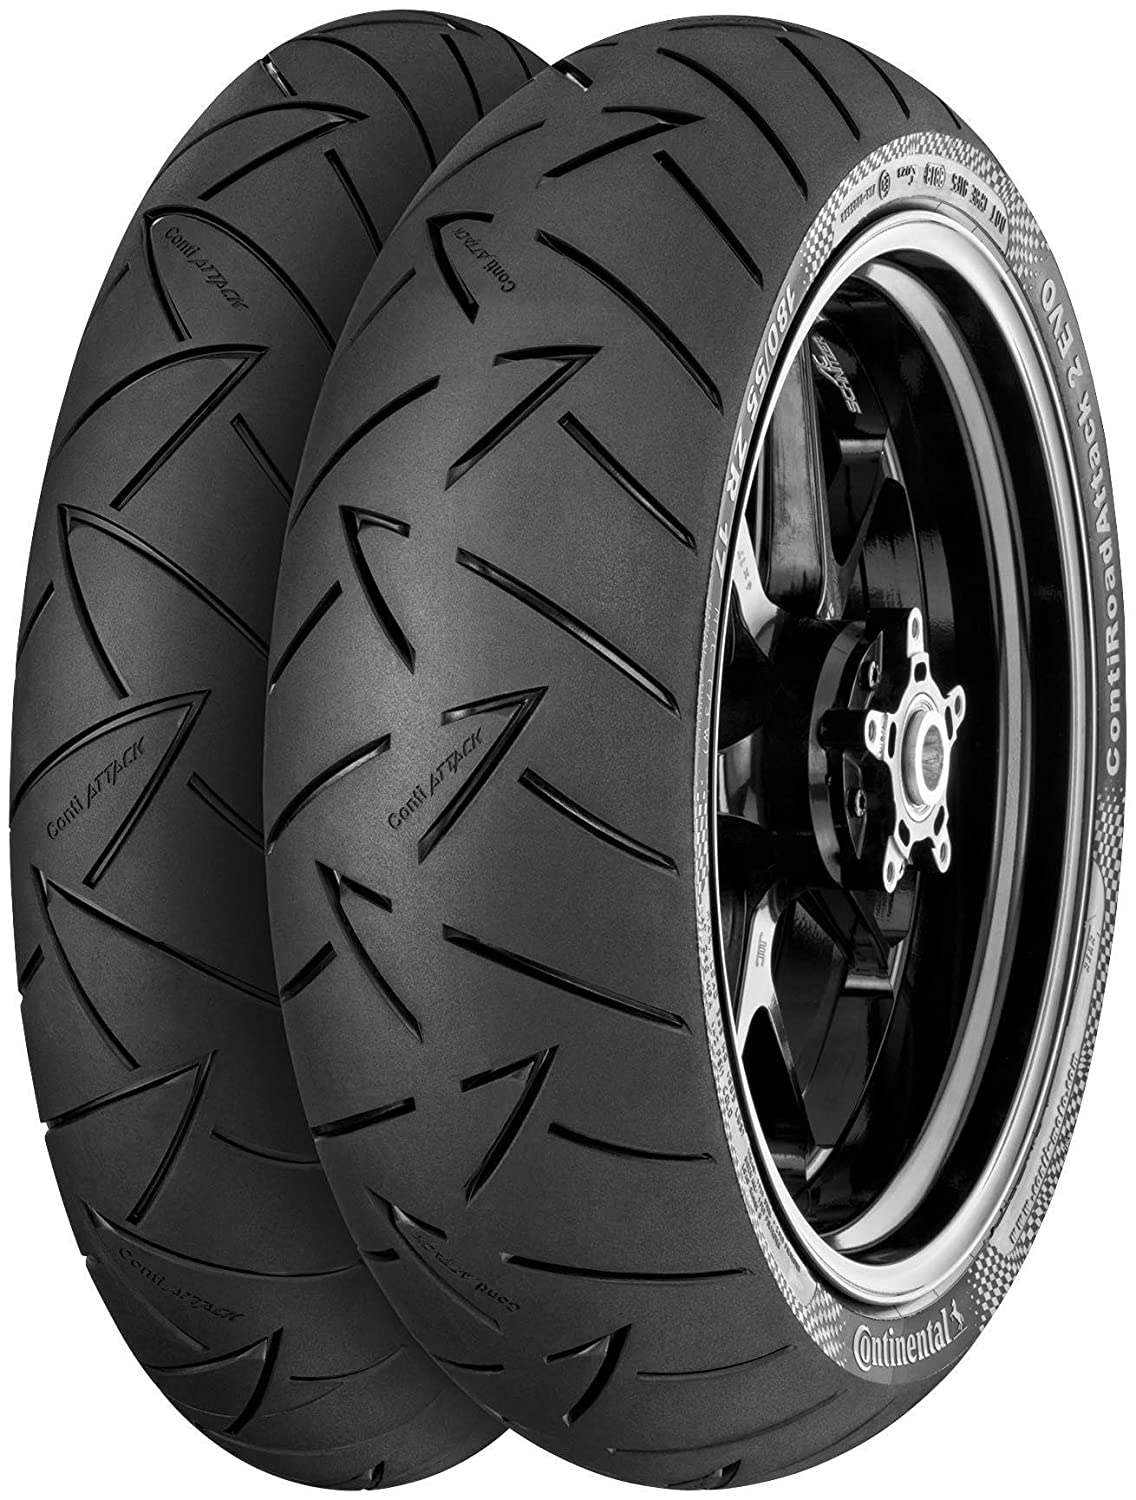 Continental Conti Road Attack 2 EVO Hyper Sport Touring Tire - Rear - 180/55ZR-17 , Position: Rear, Rim Size: 17, Tire Application: Touring, Tire Size: 180/55-17, Tire Type: Street, Load Rating: 73, Speed Rating: W, Tire Construction: Radial 02443550000